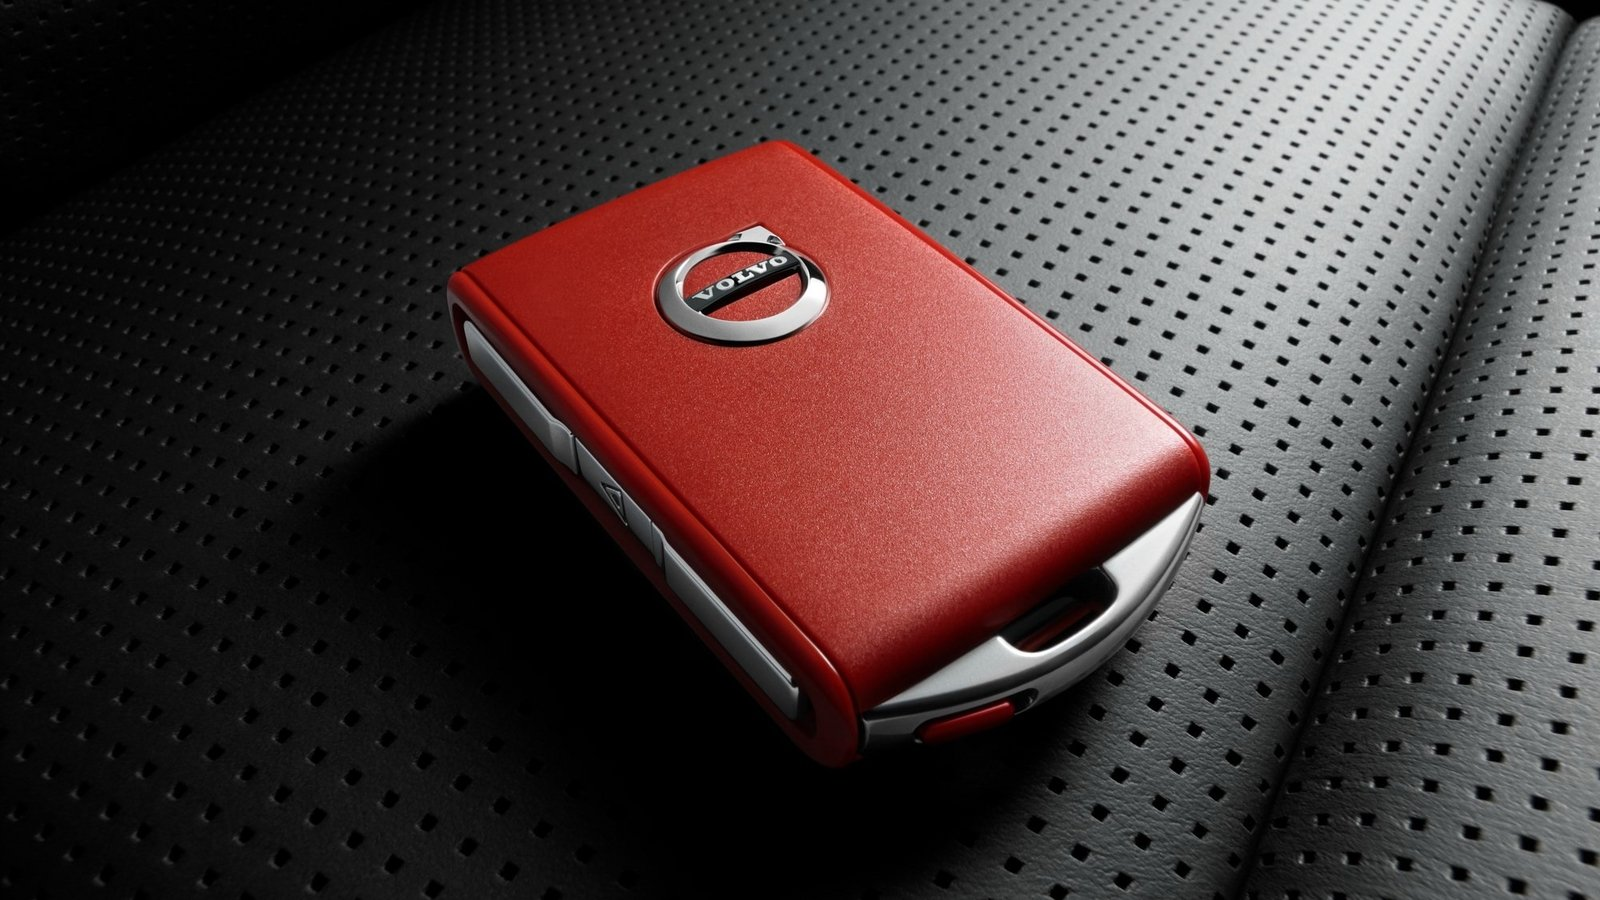 Volvo S Quot Red Key Quot Is The Swiss Army Knife Of Car Keys